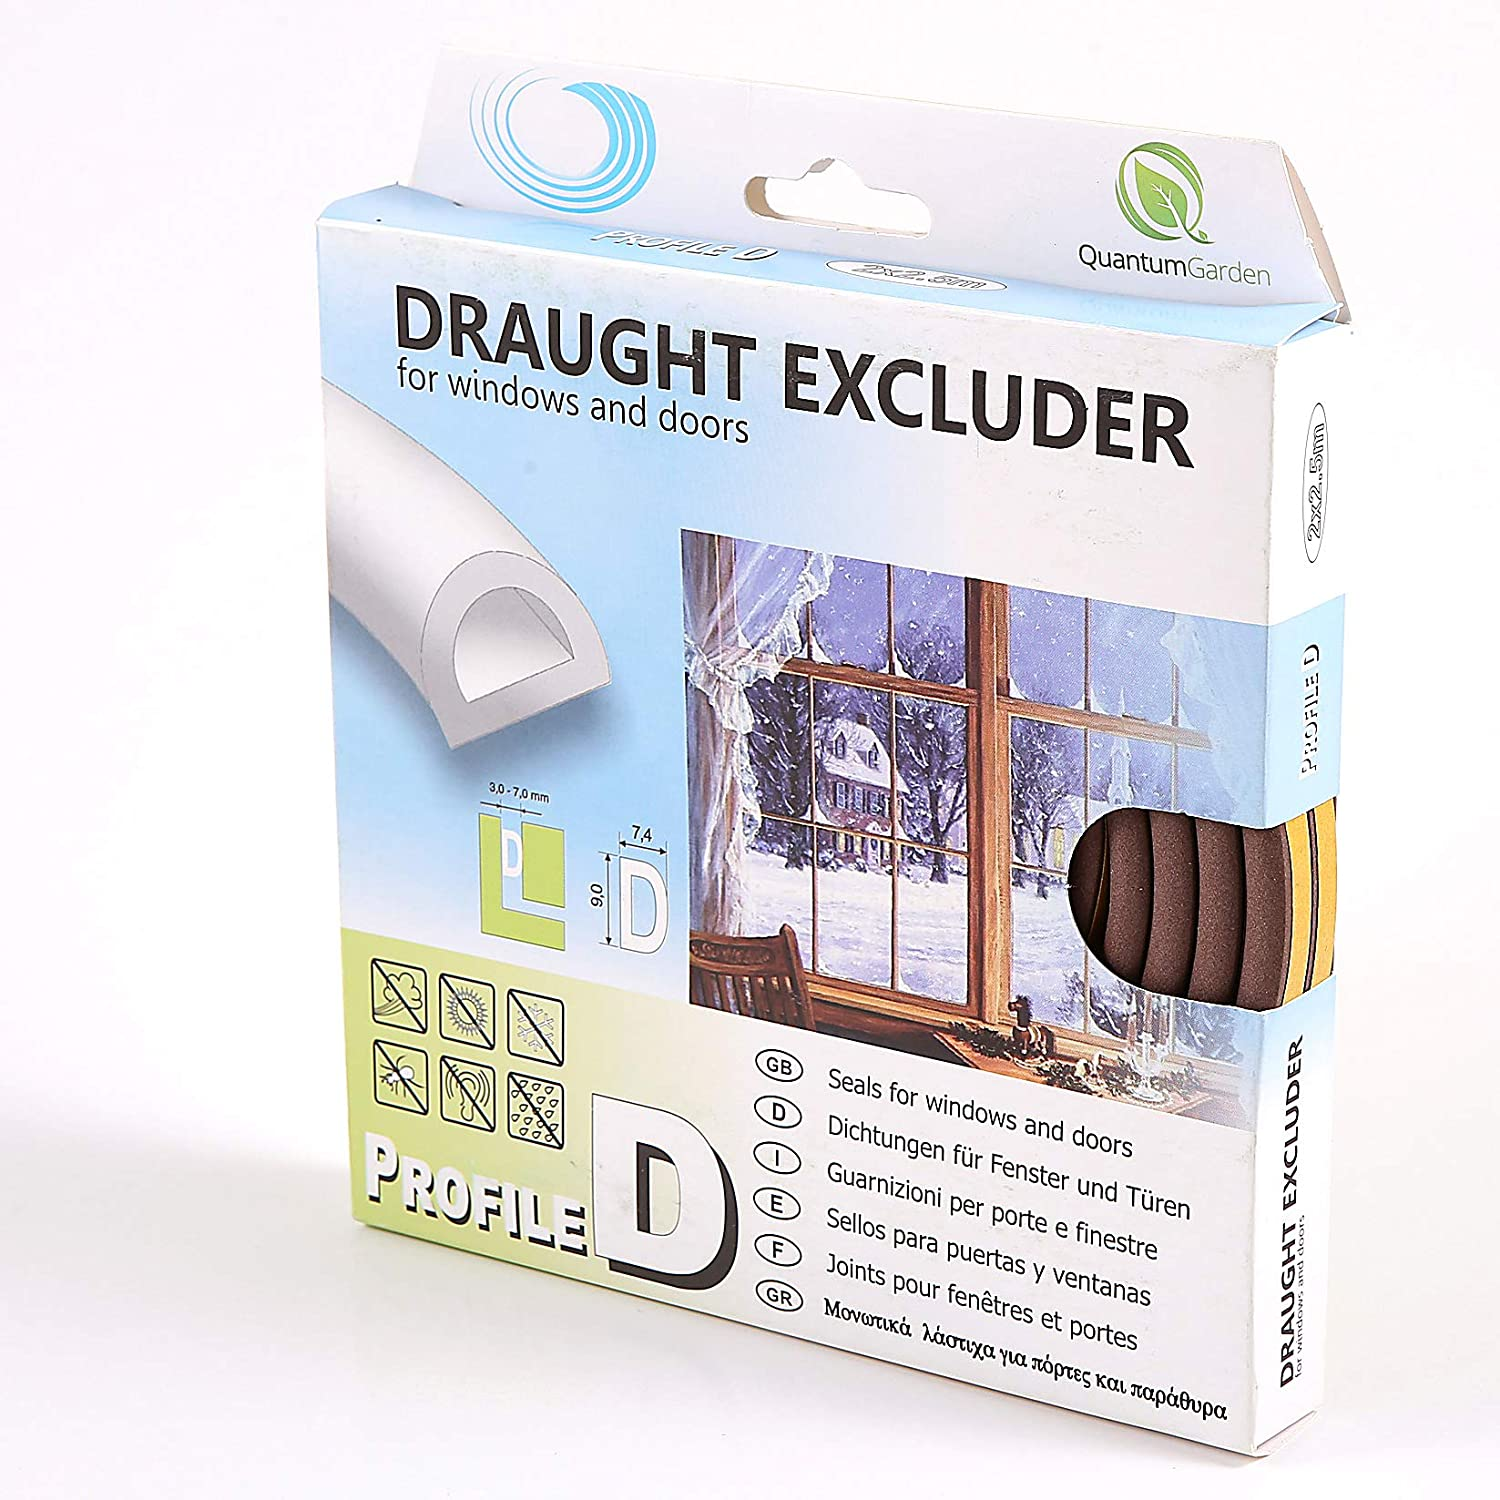 Amazon.com: 10m Assorted Profile Draught Excluder - EPDM Rubber Draught Seal and Foam for Window or Door (Profile D, Brown) by Quantum Garden: Appliances